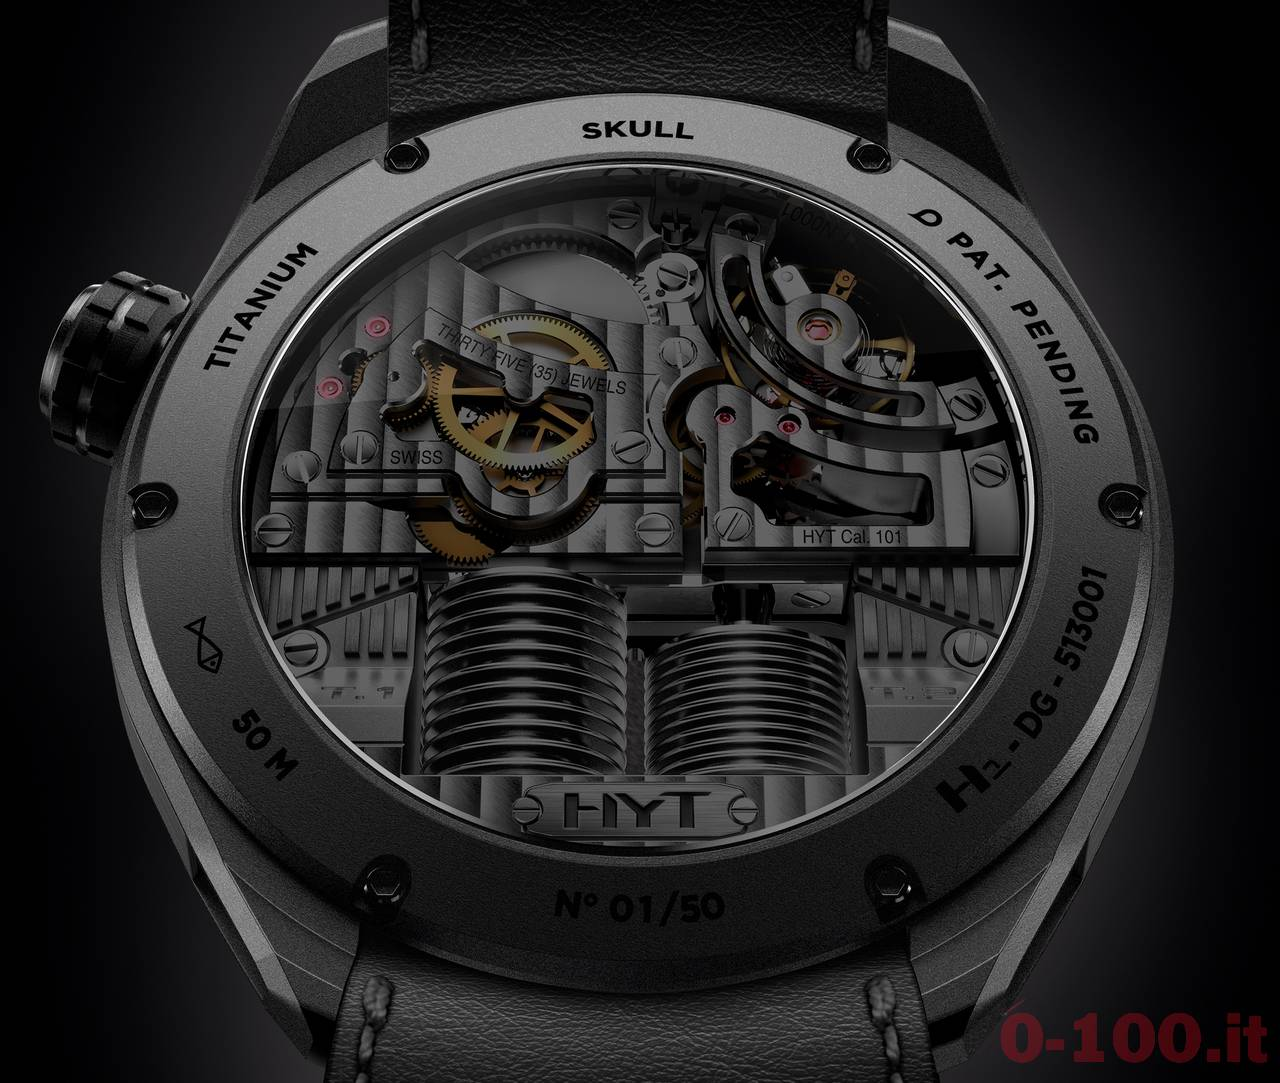 baselworld-2016-hyt-skull-bad-boy-prezzo-price_0-1004